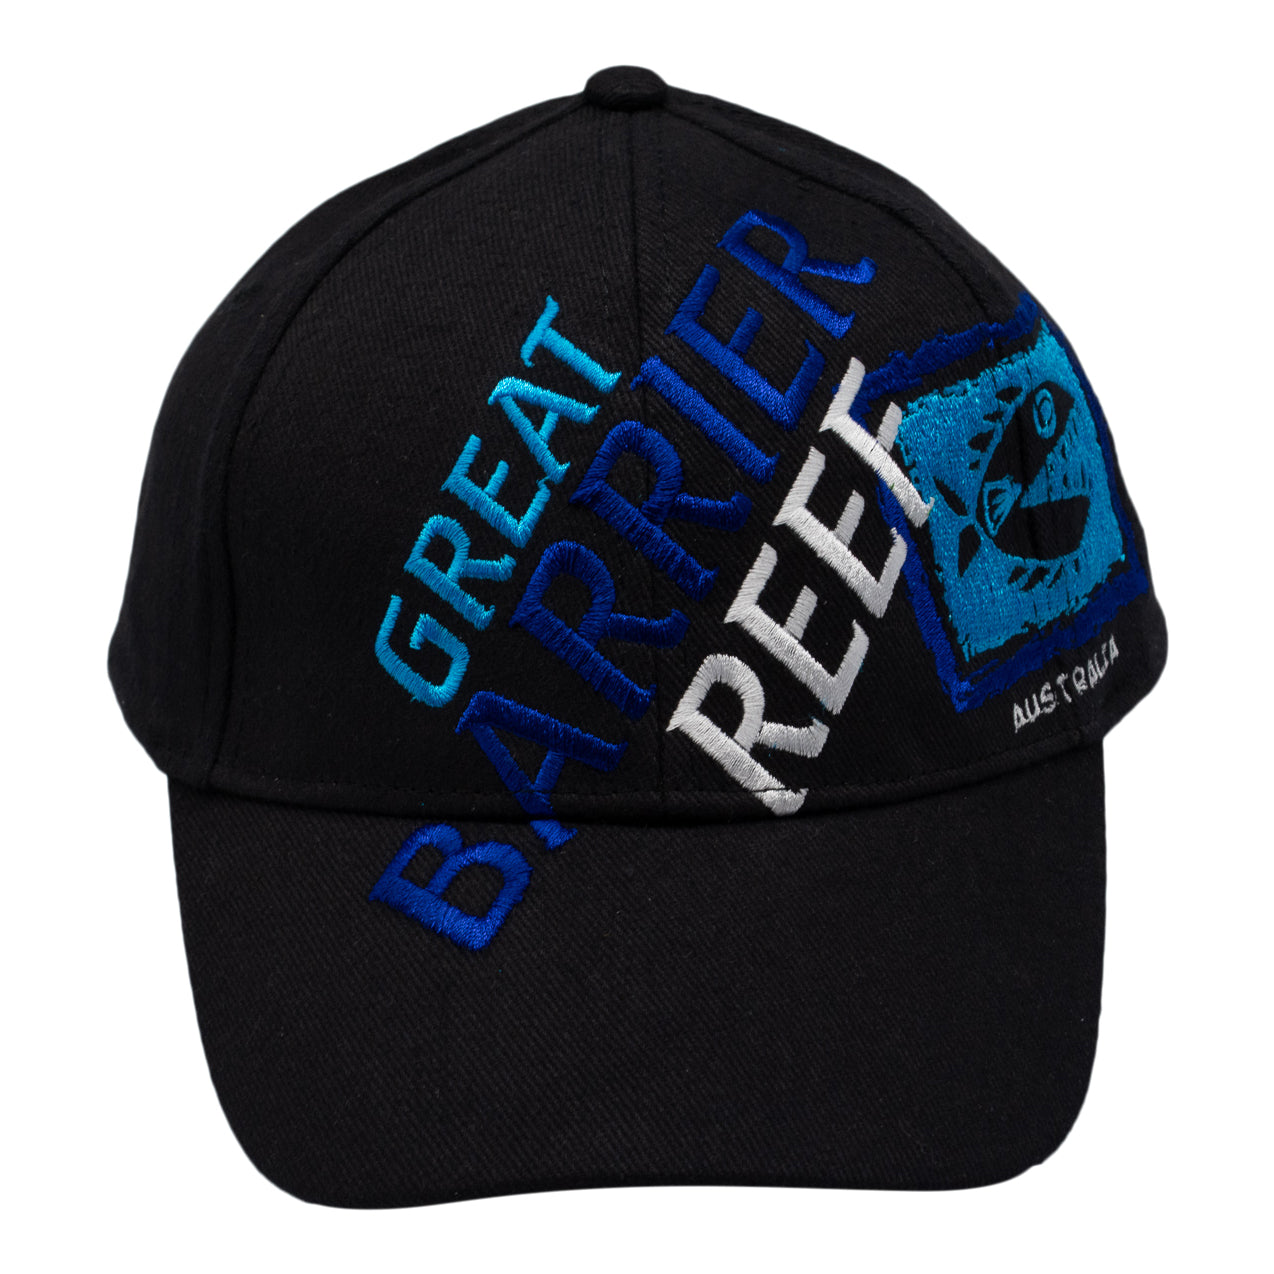 Caps - black Great Barrier Reef, Australia - light blue, blue & white-Men's caps-Oz About Oz